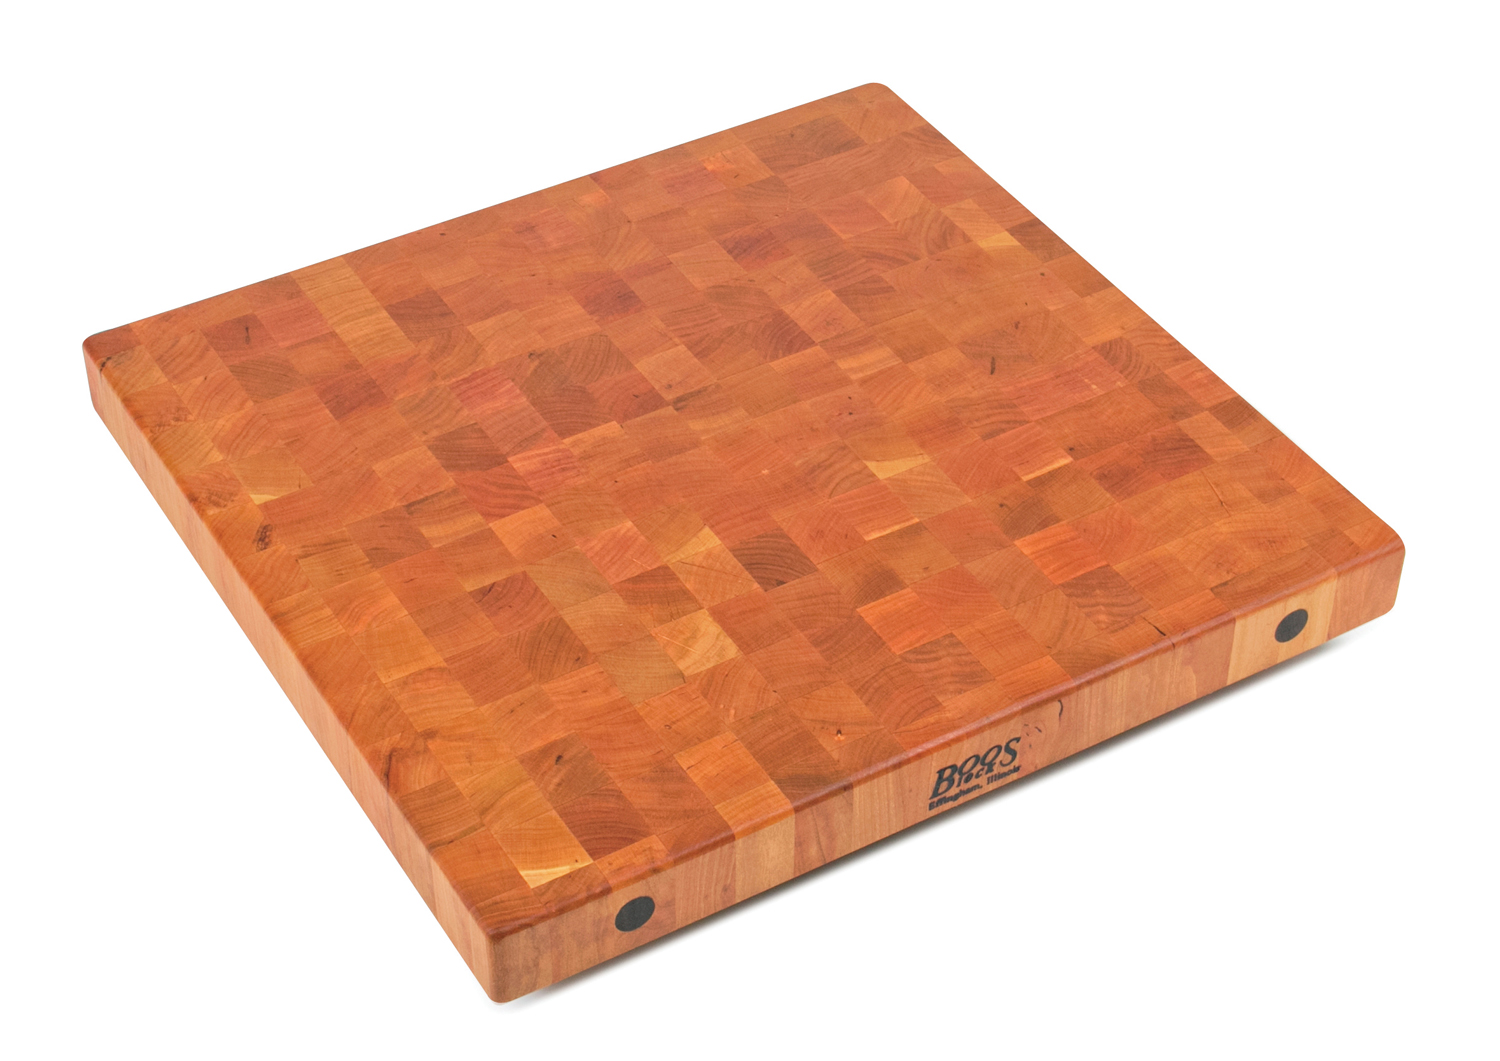 4 inch end grain cherry countertops Boos butcher block